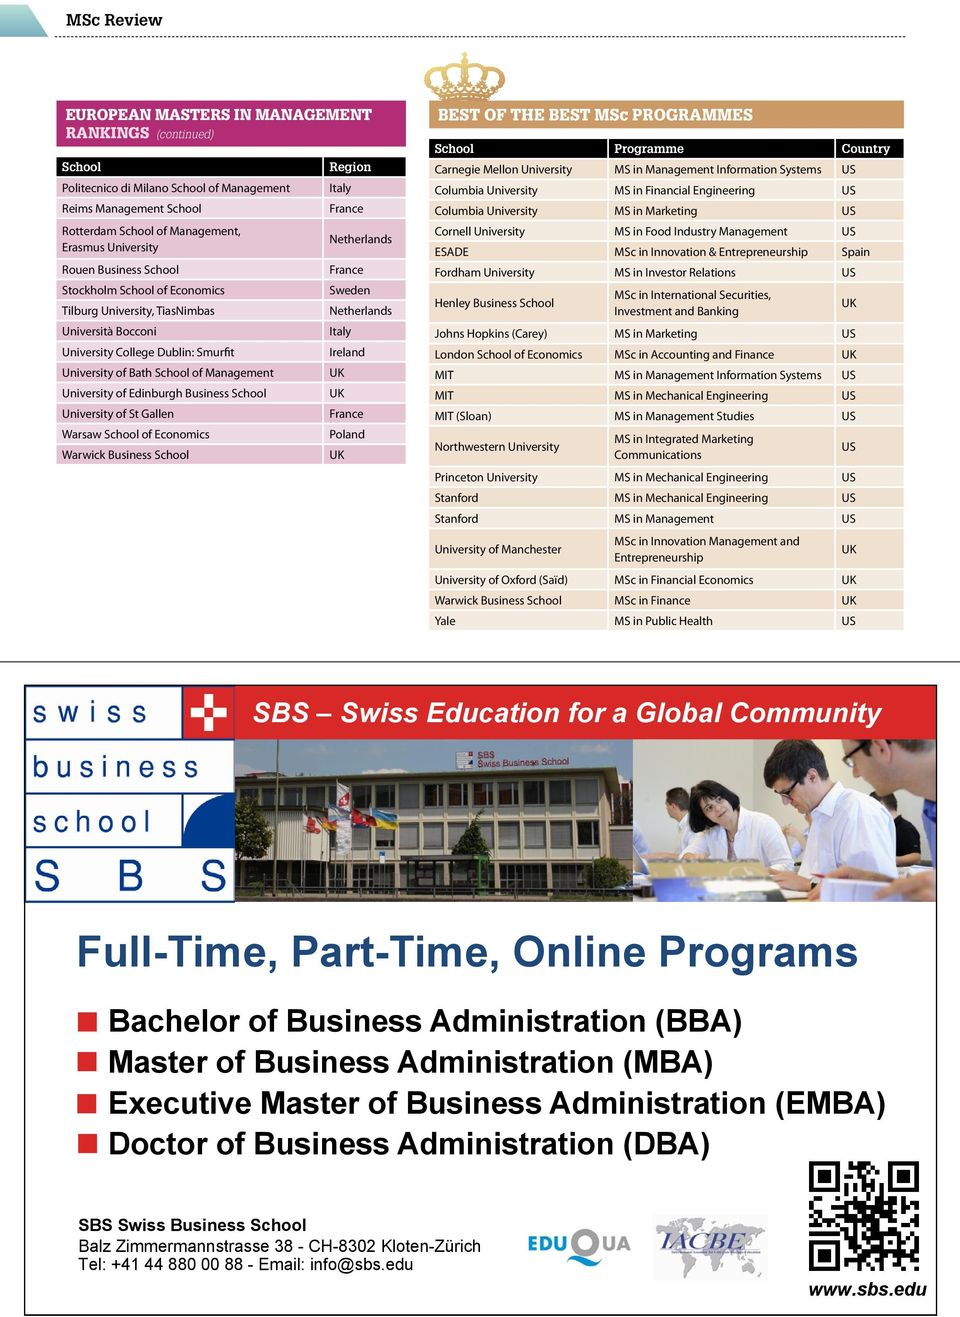 Warwick Business Sweden BEST OF THE BEST MSc PROGRAMMES Programme Country Carnegie Mellon University MS in Management Information Systems US Columbia University MS in Financial Engineering US